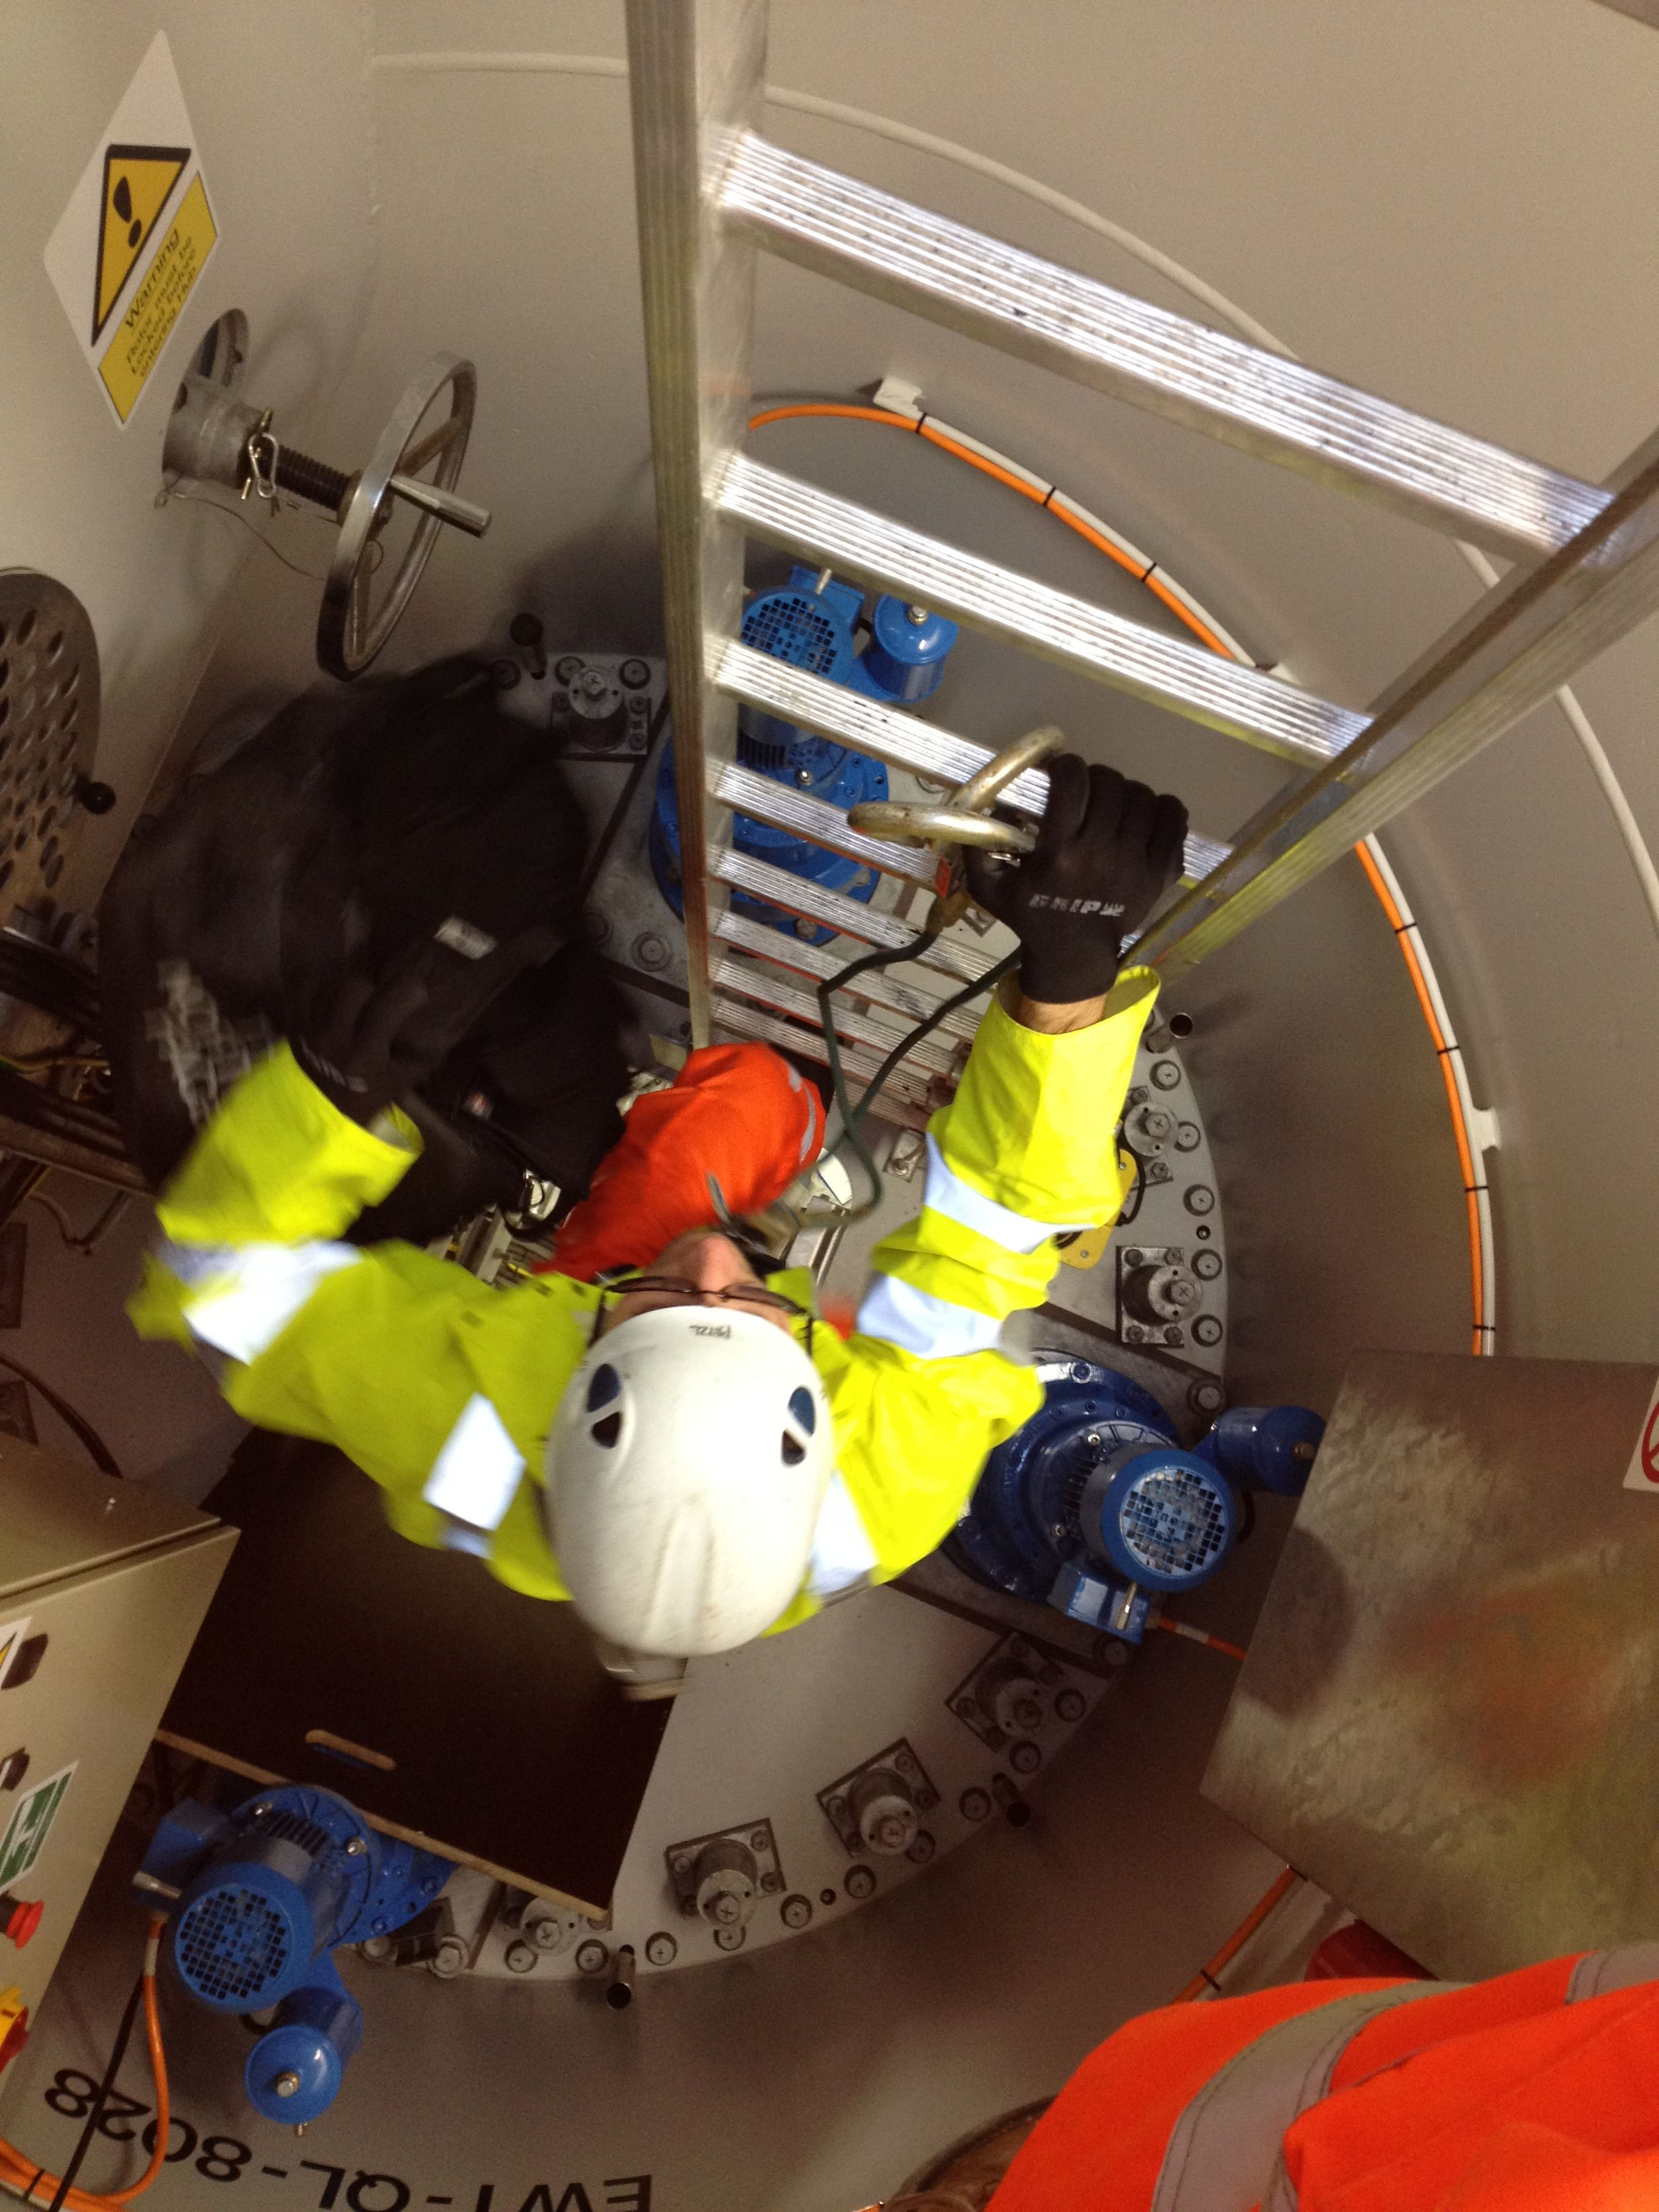 Specialist test & inspection service for wind turbines work at